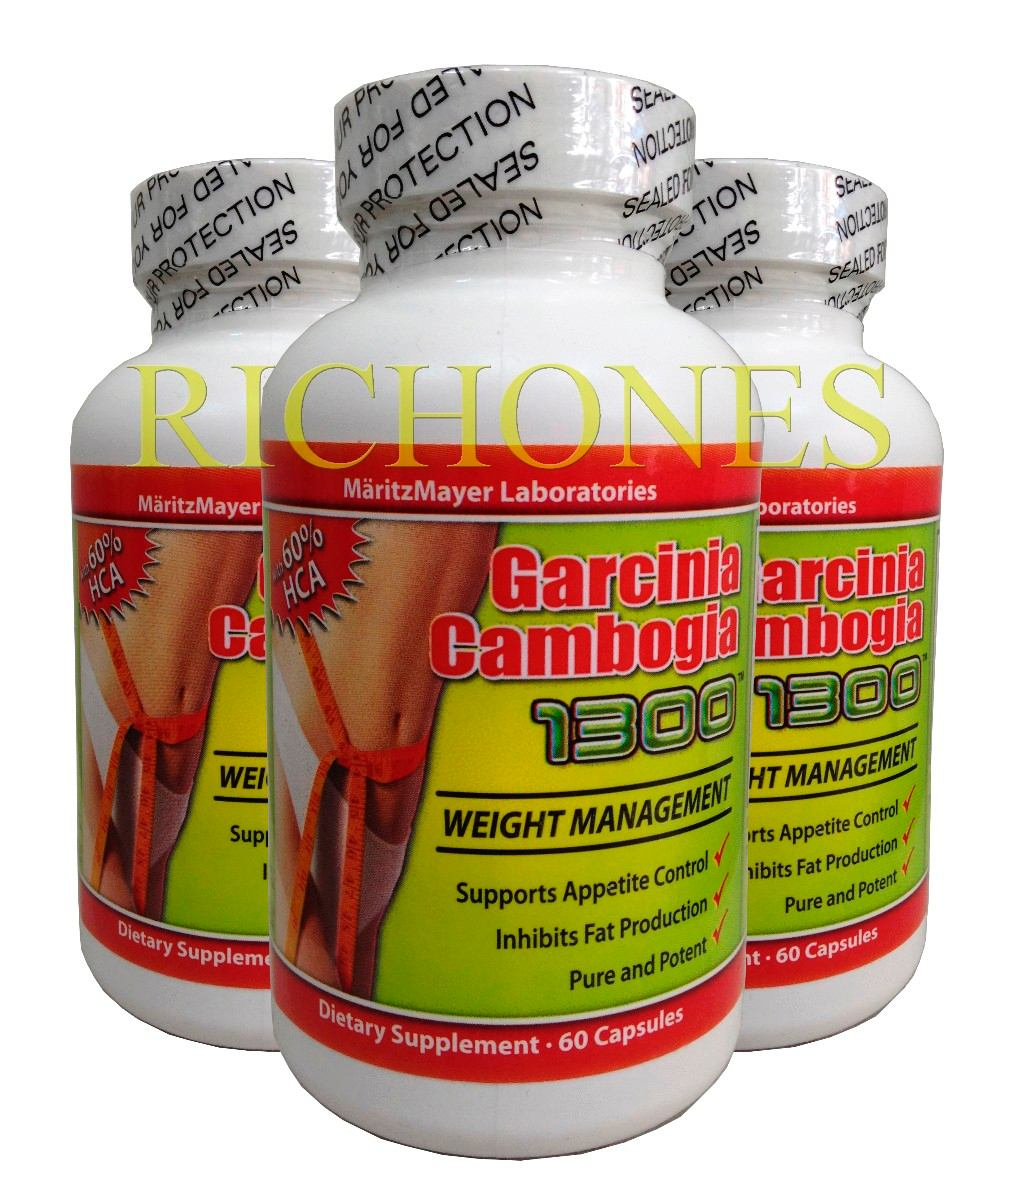 Best over the counter fat burner supplement picture 2